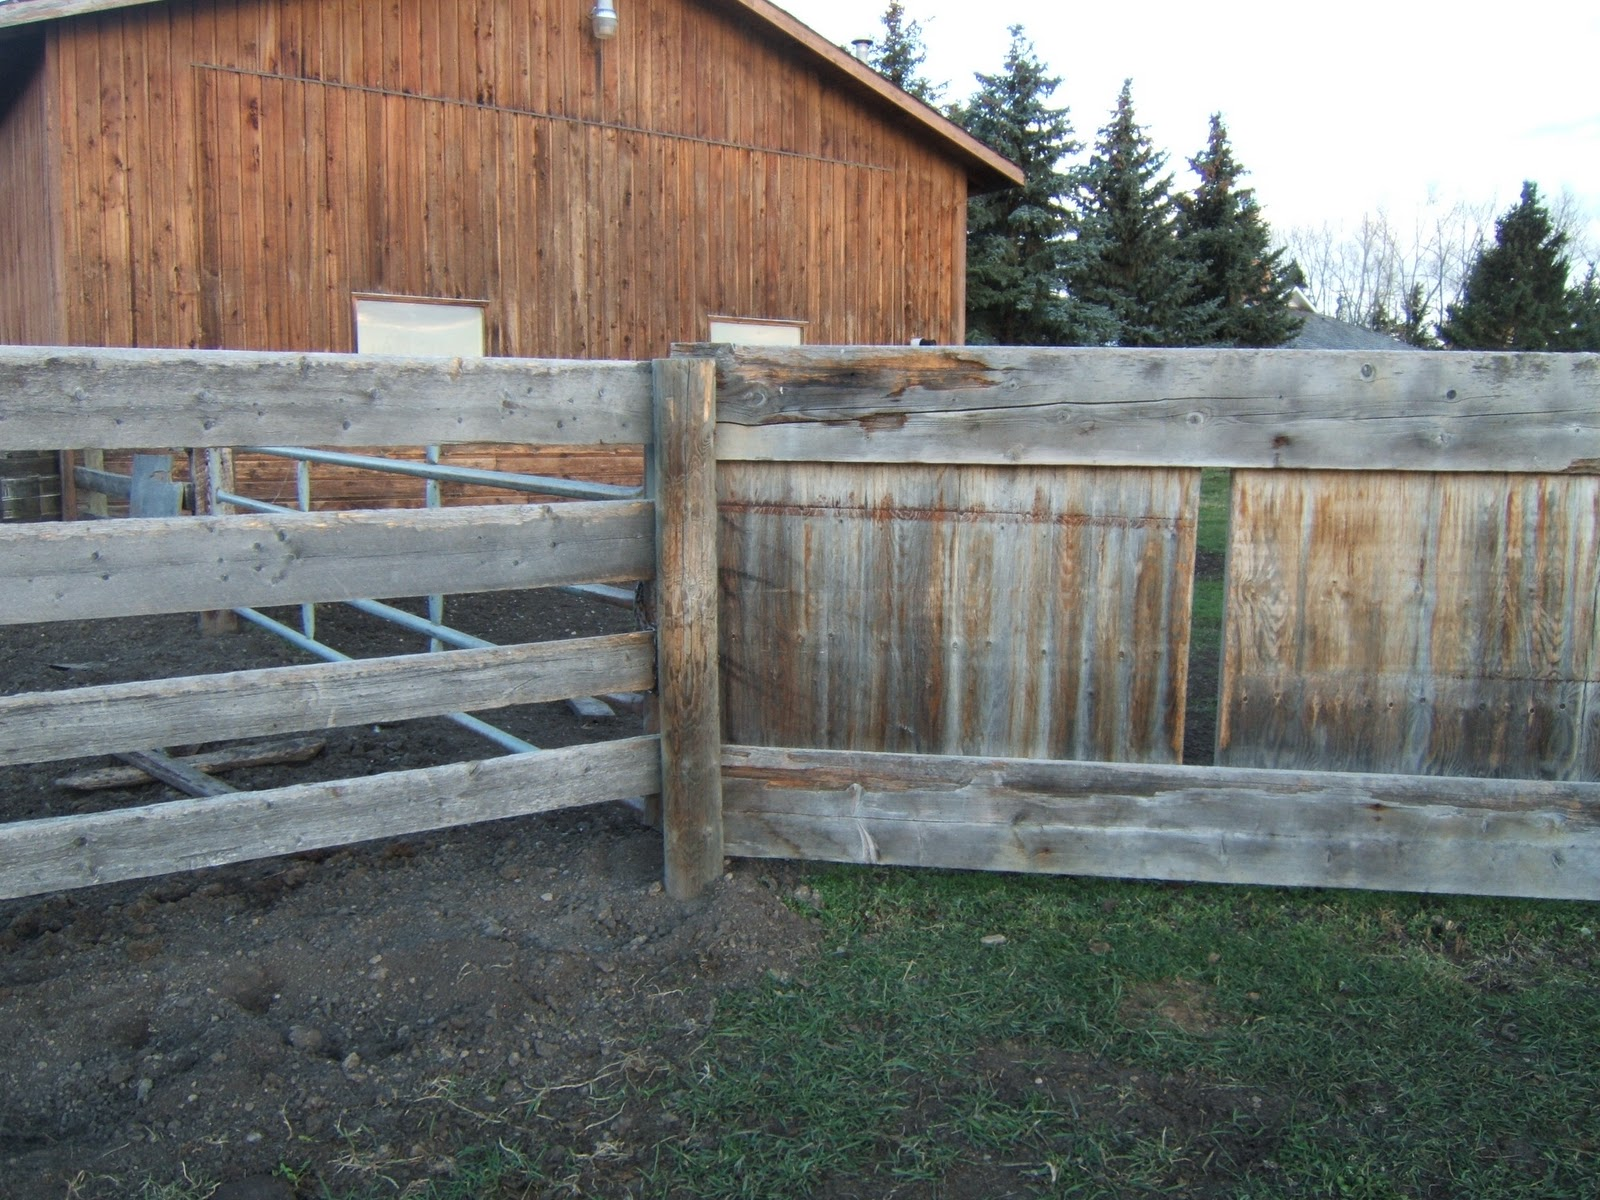 A Green Guide To Life On A Small Farm: Fences